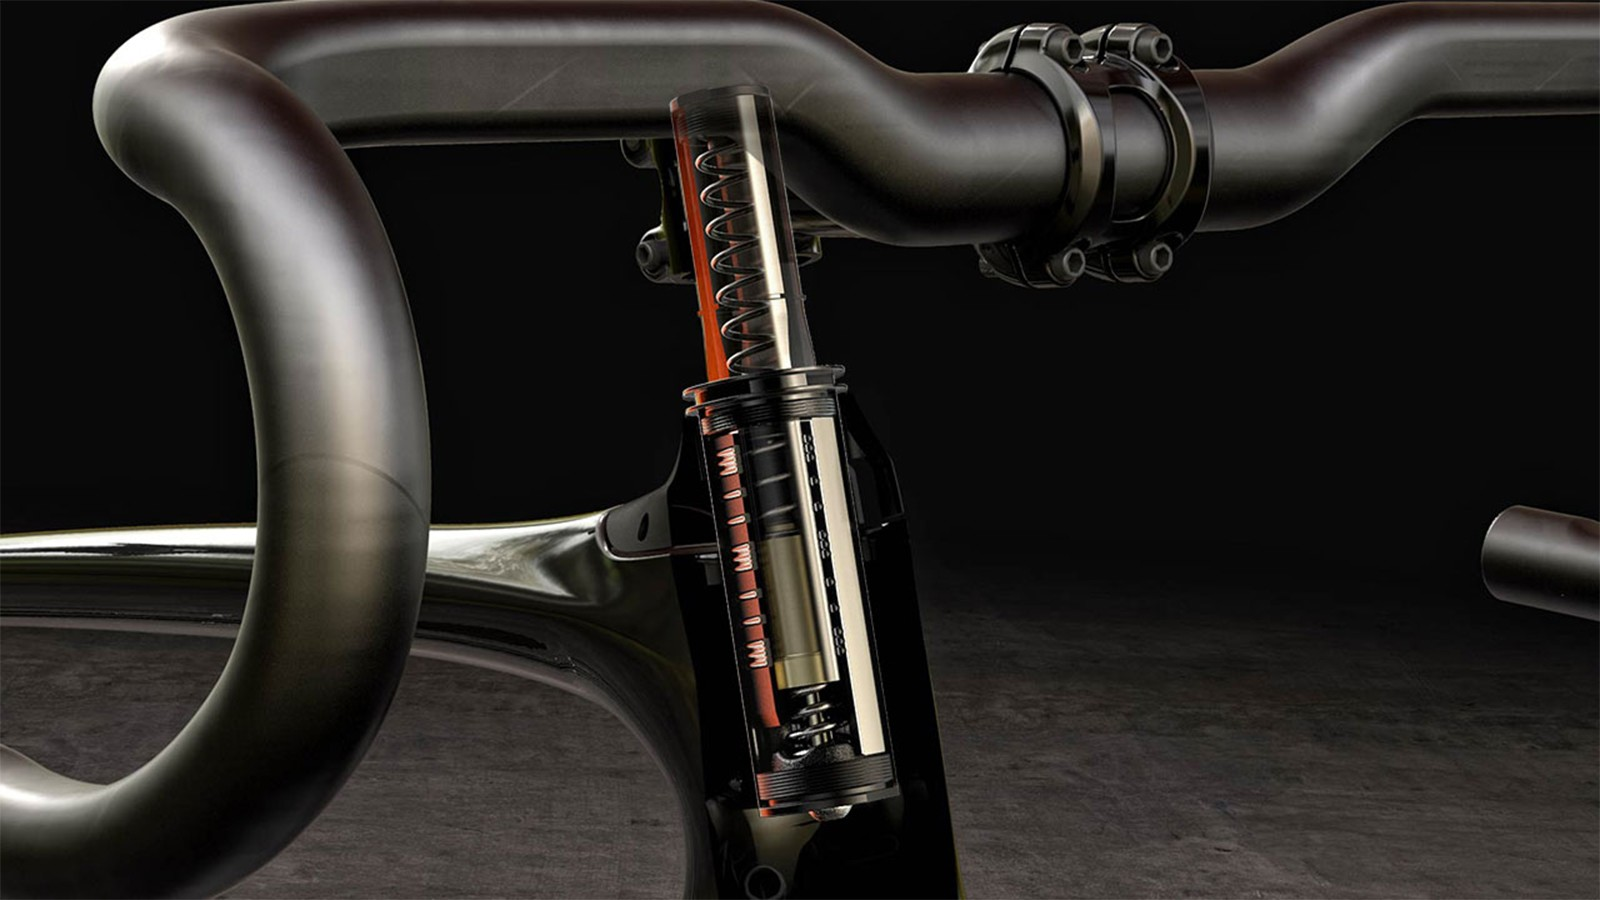 The stock Specialized Future Shock uses a spring housed in the steerer tube to provide 20mm of suspension